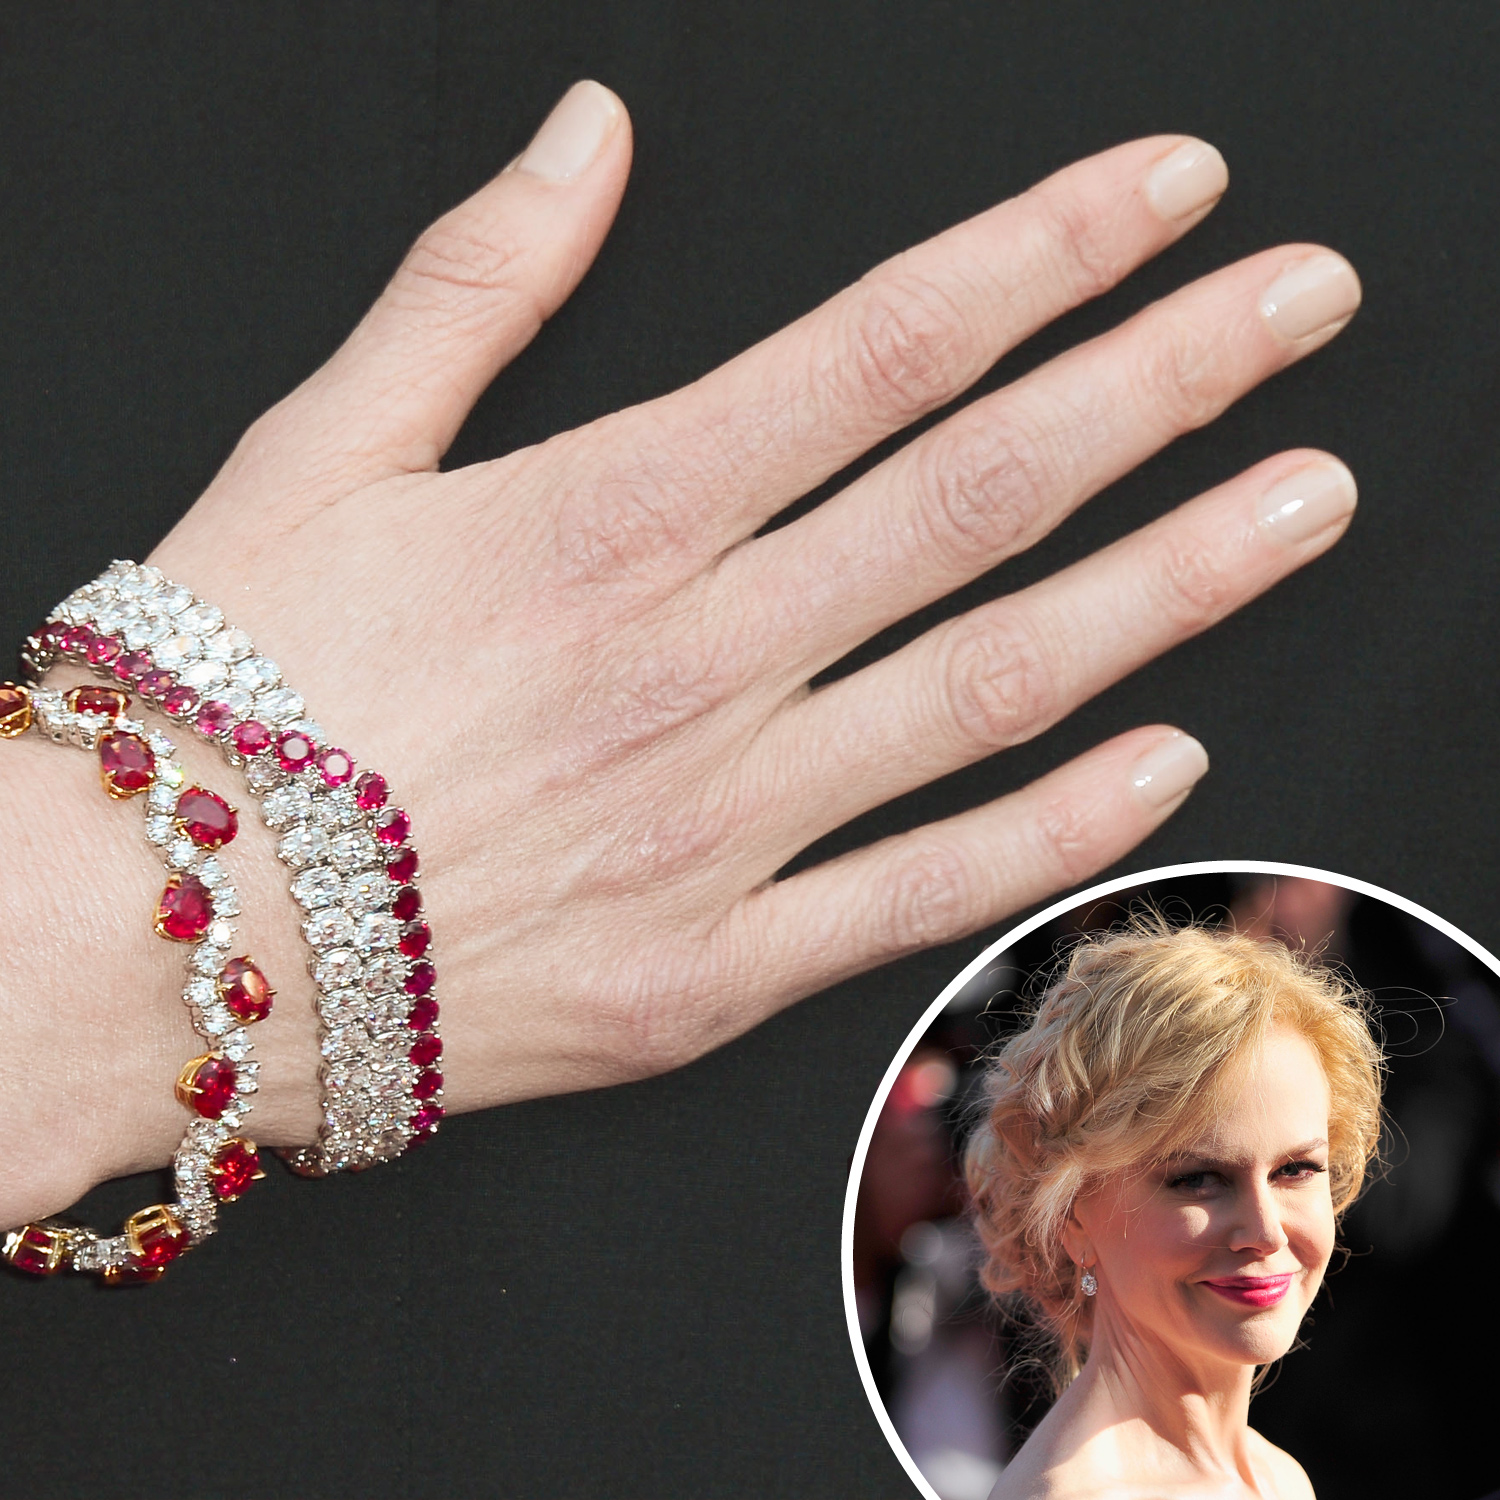 Nicole Kidman wore a nude nail color that matched her ivory complexion to really let her jewels stand out at the closing ceremony.